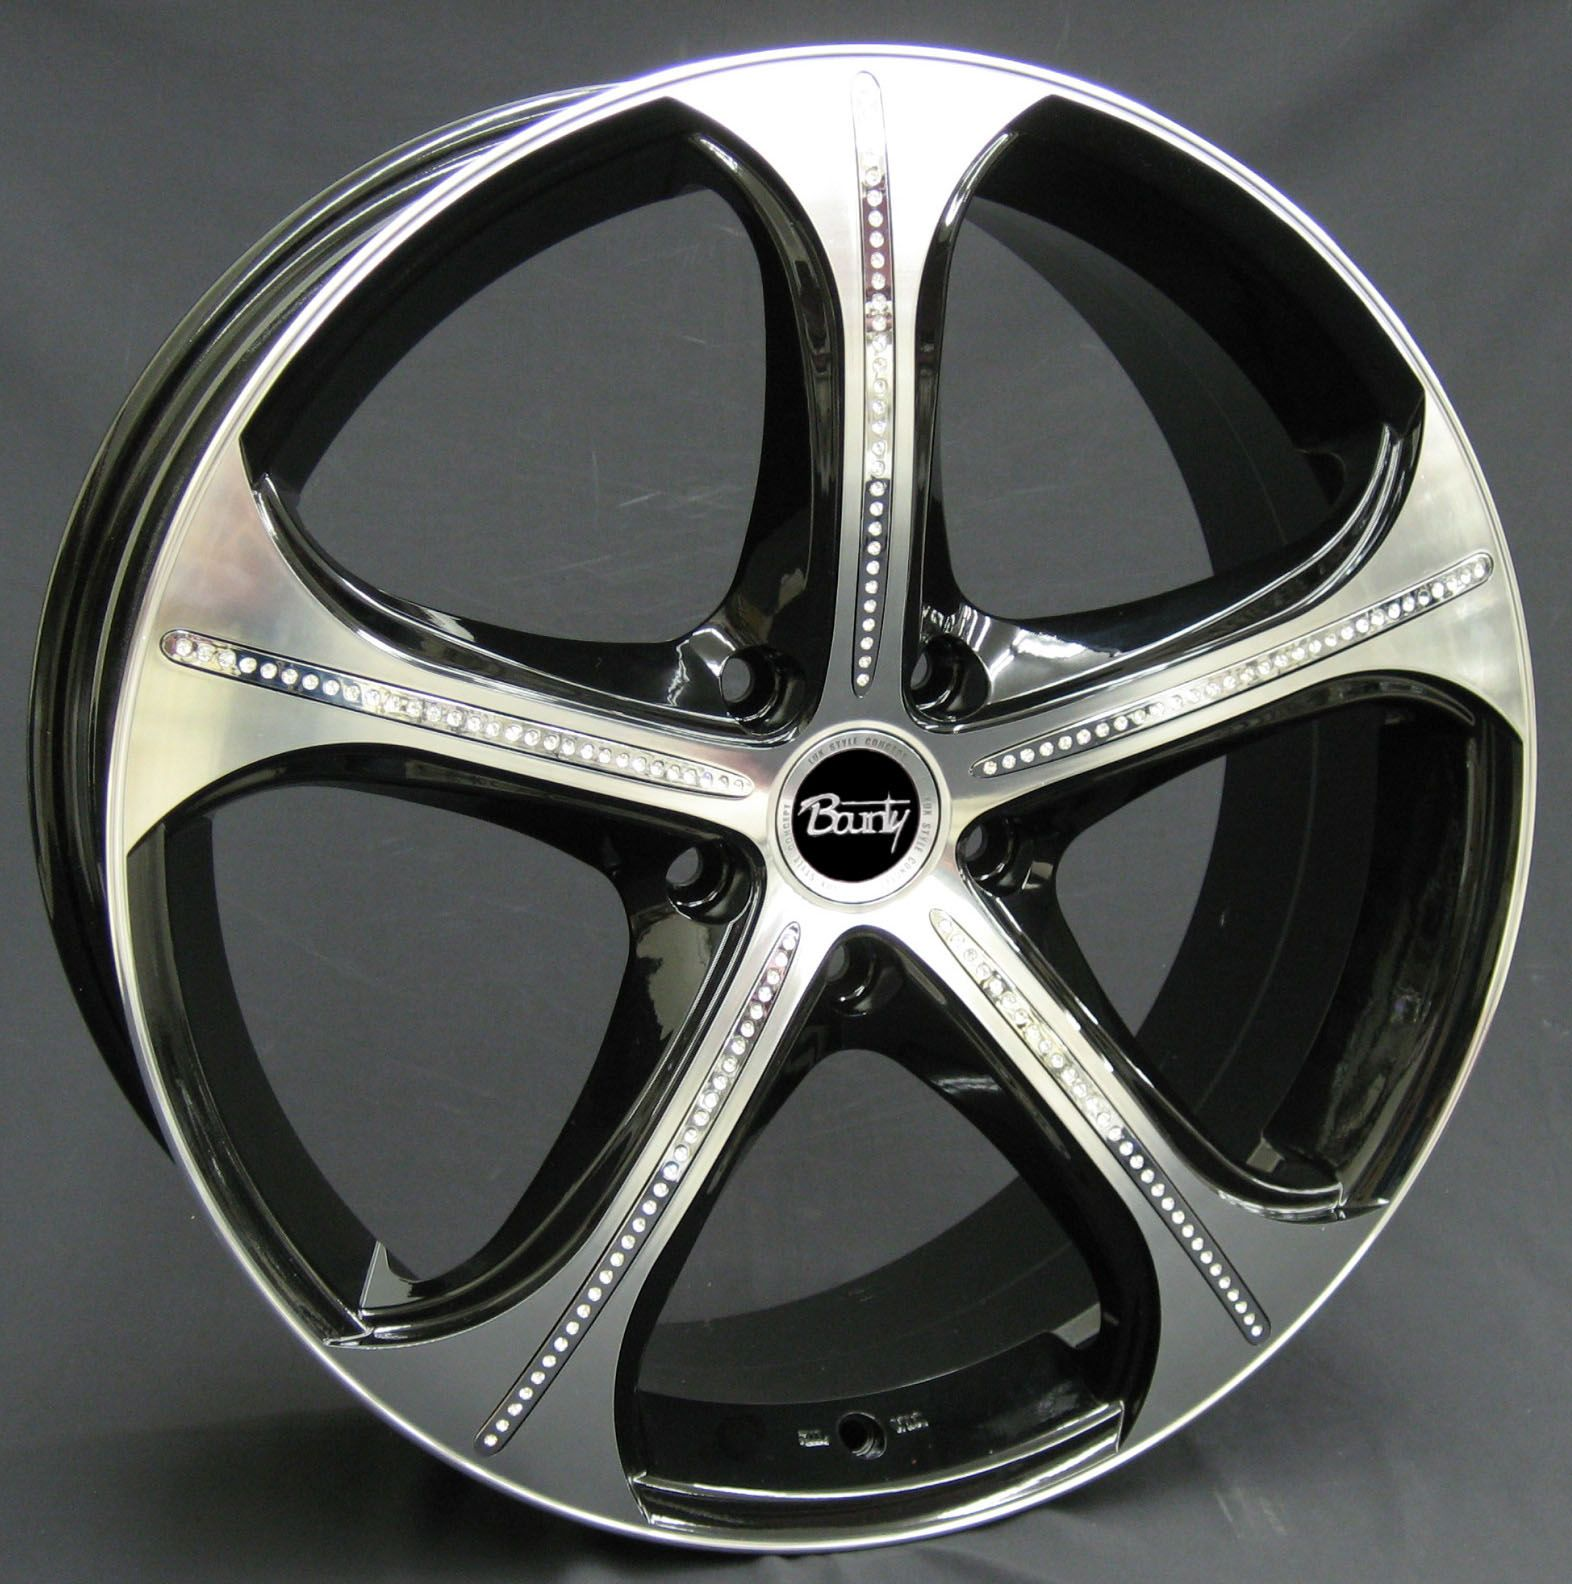 Car Rim Accessories Find the Classic Rims of Your Dreams - www ...